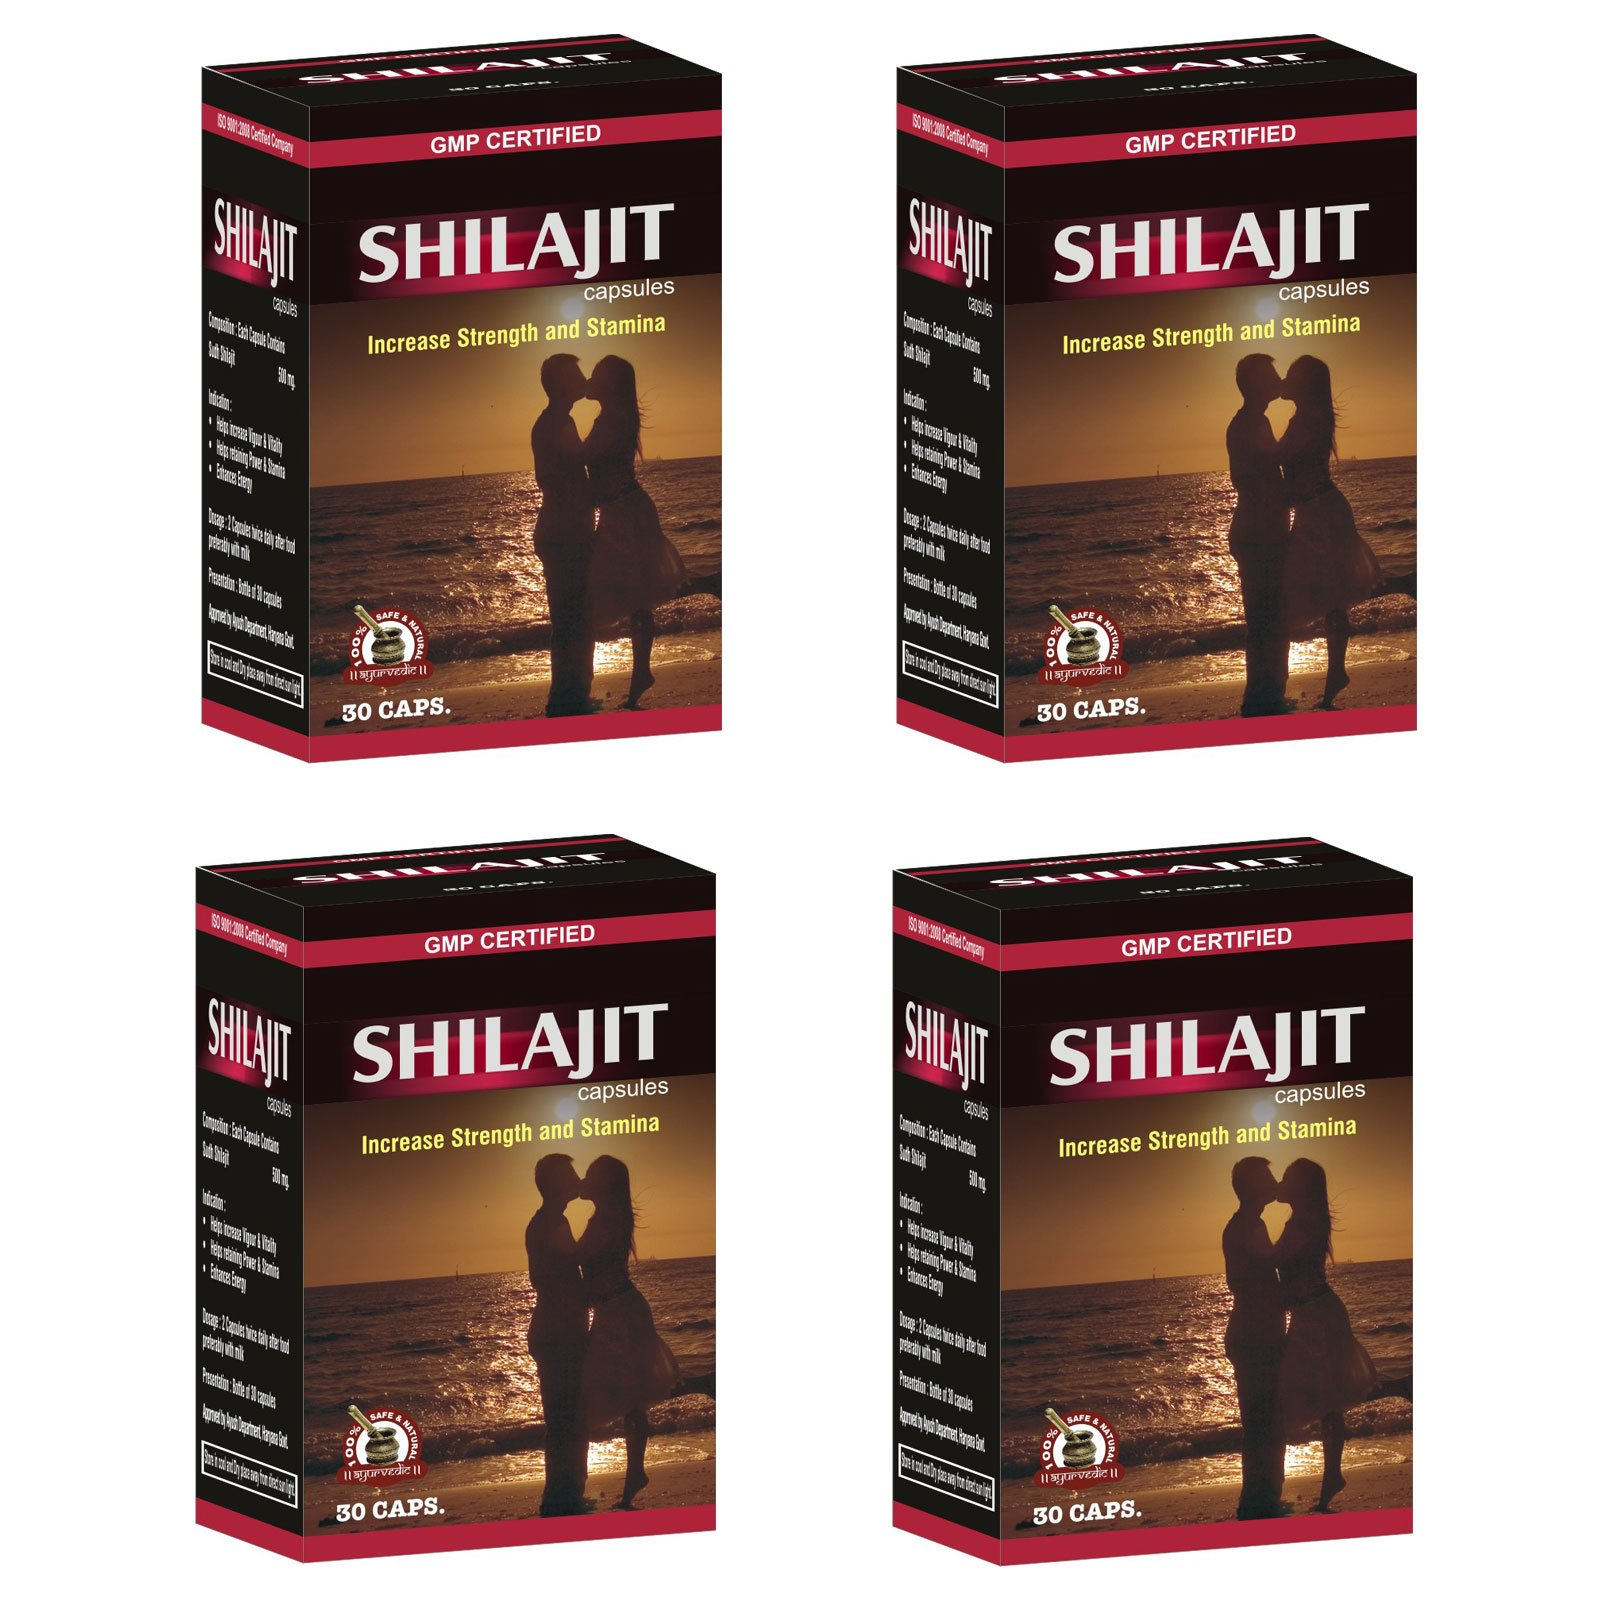 Ayurved Research Foundation Shilajit Capsule Herbal Supplement To Increase Energy And Stamina 4 Packs of 30 Capsules